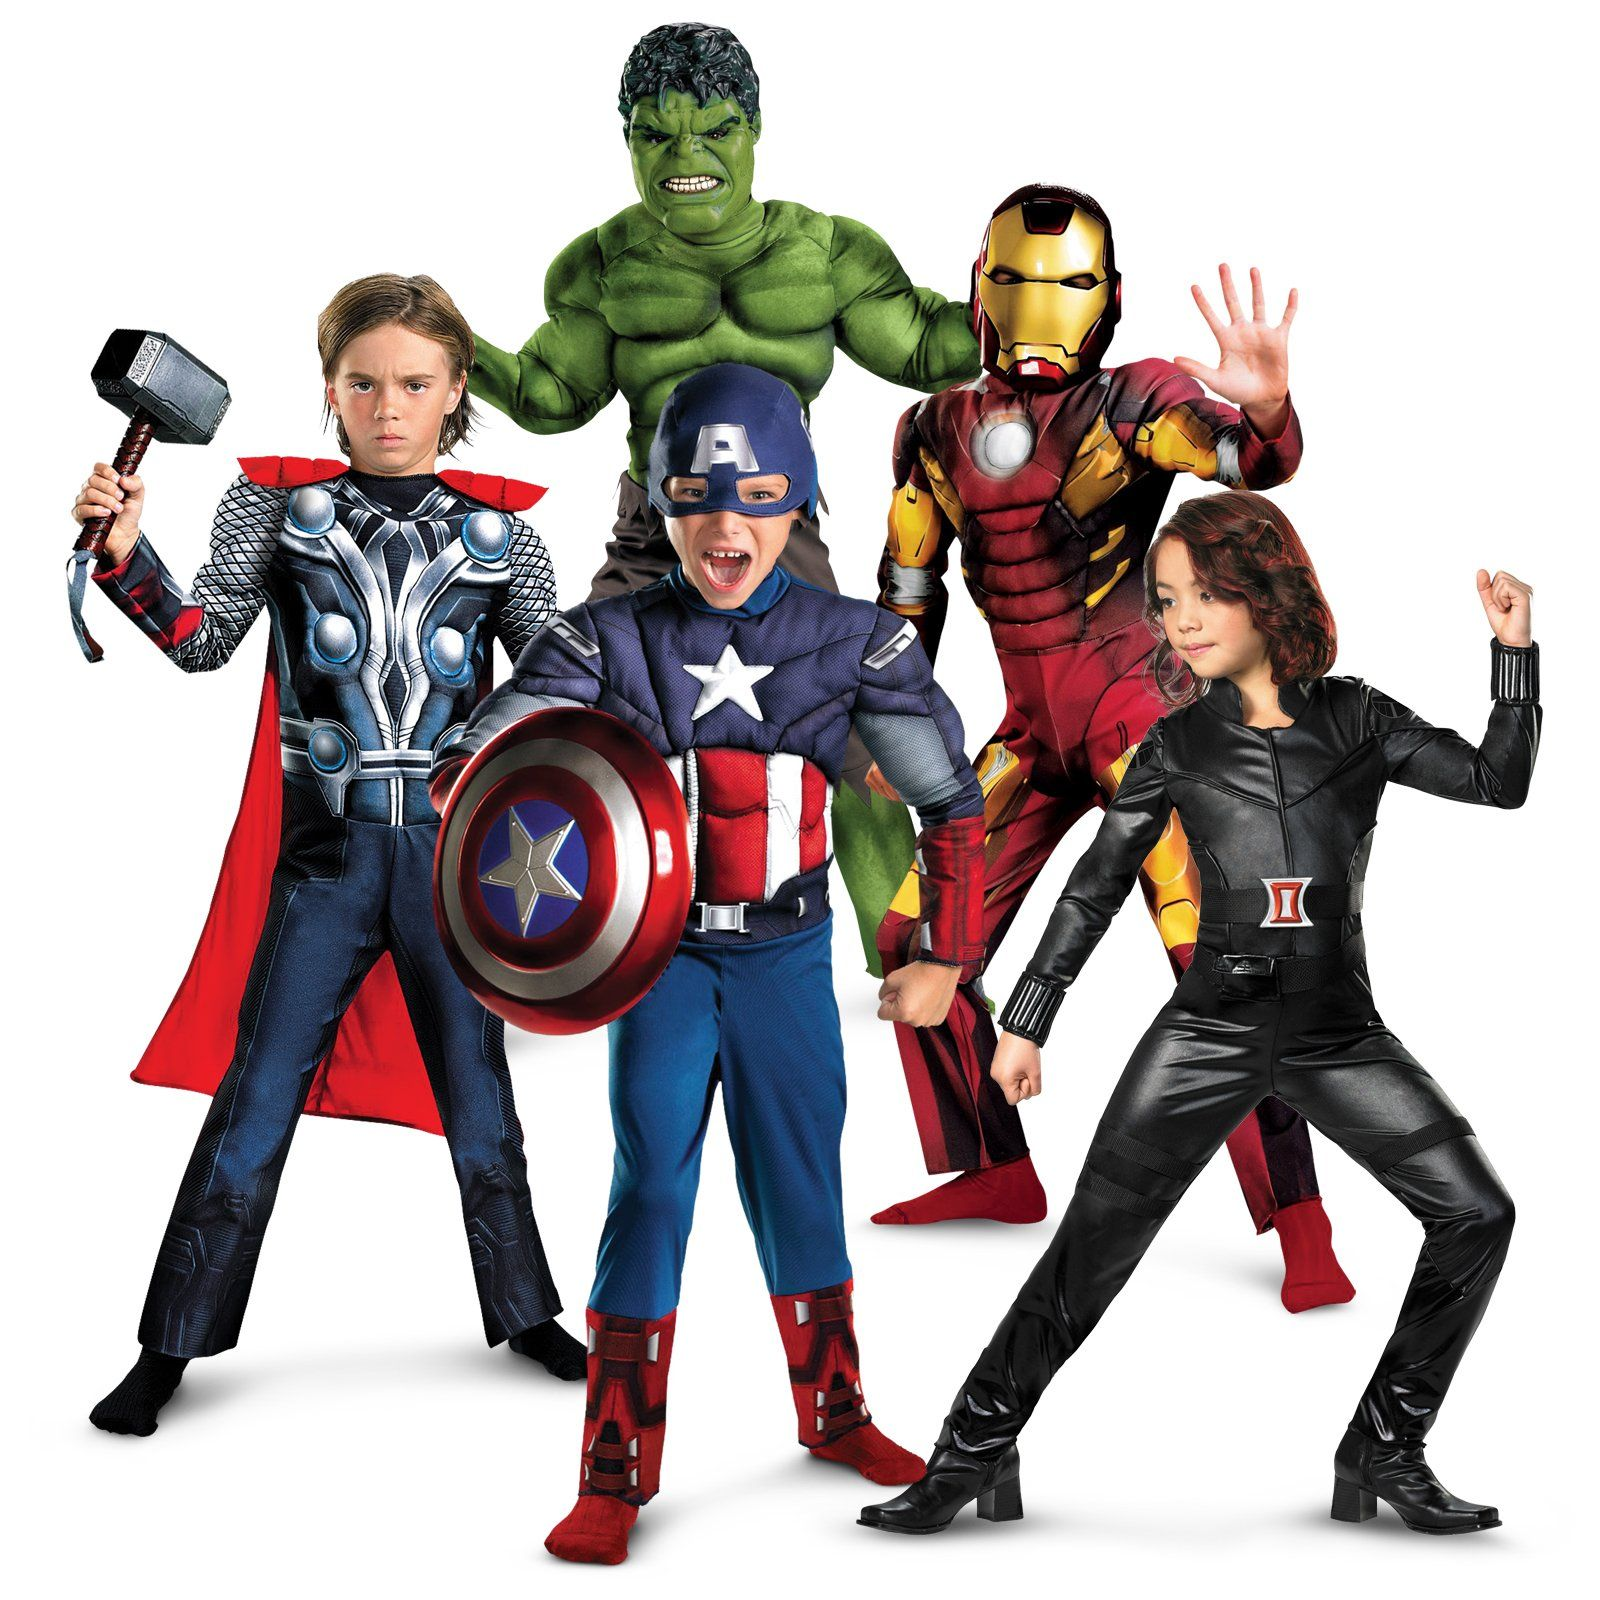 The Avengers Superhero Superheroes Theavengers Costume Dressup Party Costumeexpress Marvel Family Costumes Super Hero Costumes Superhero Party